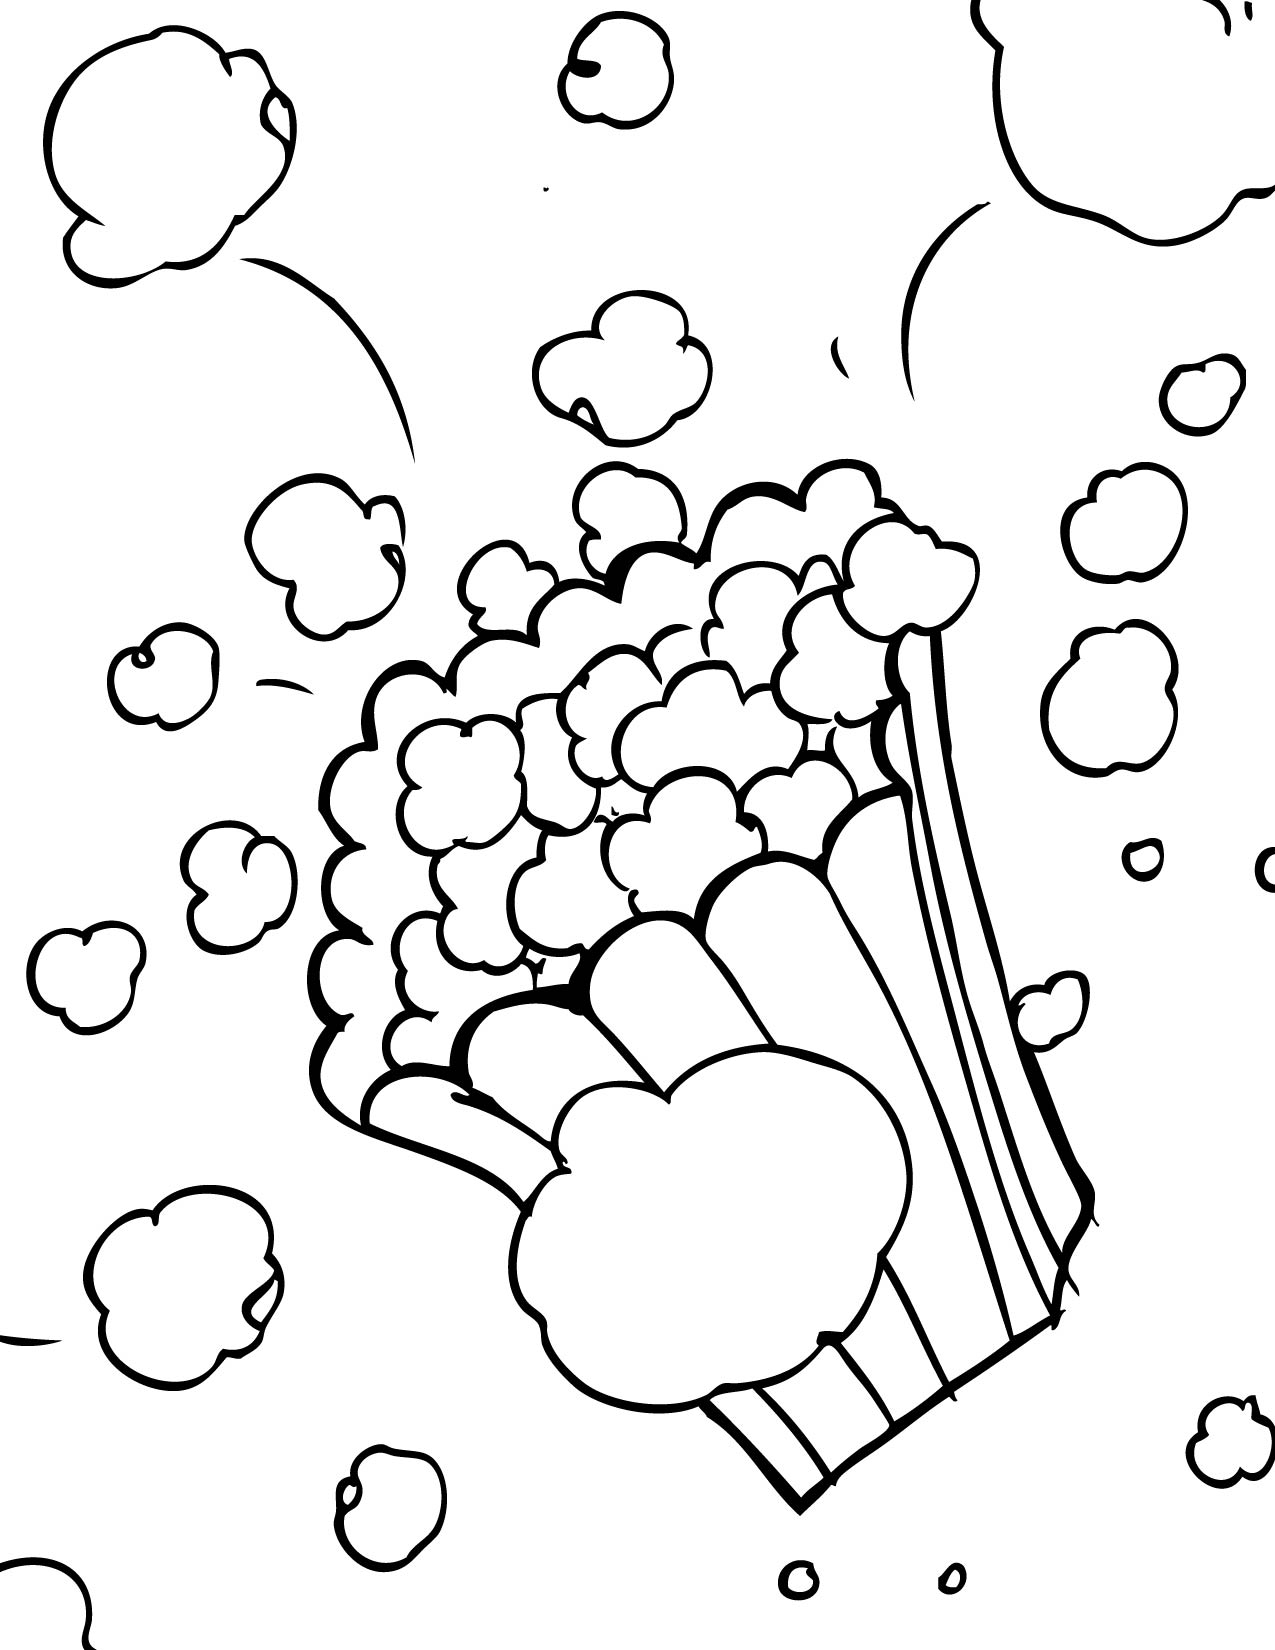 popcorn coloring pages to download and print for free